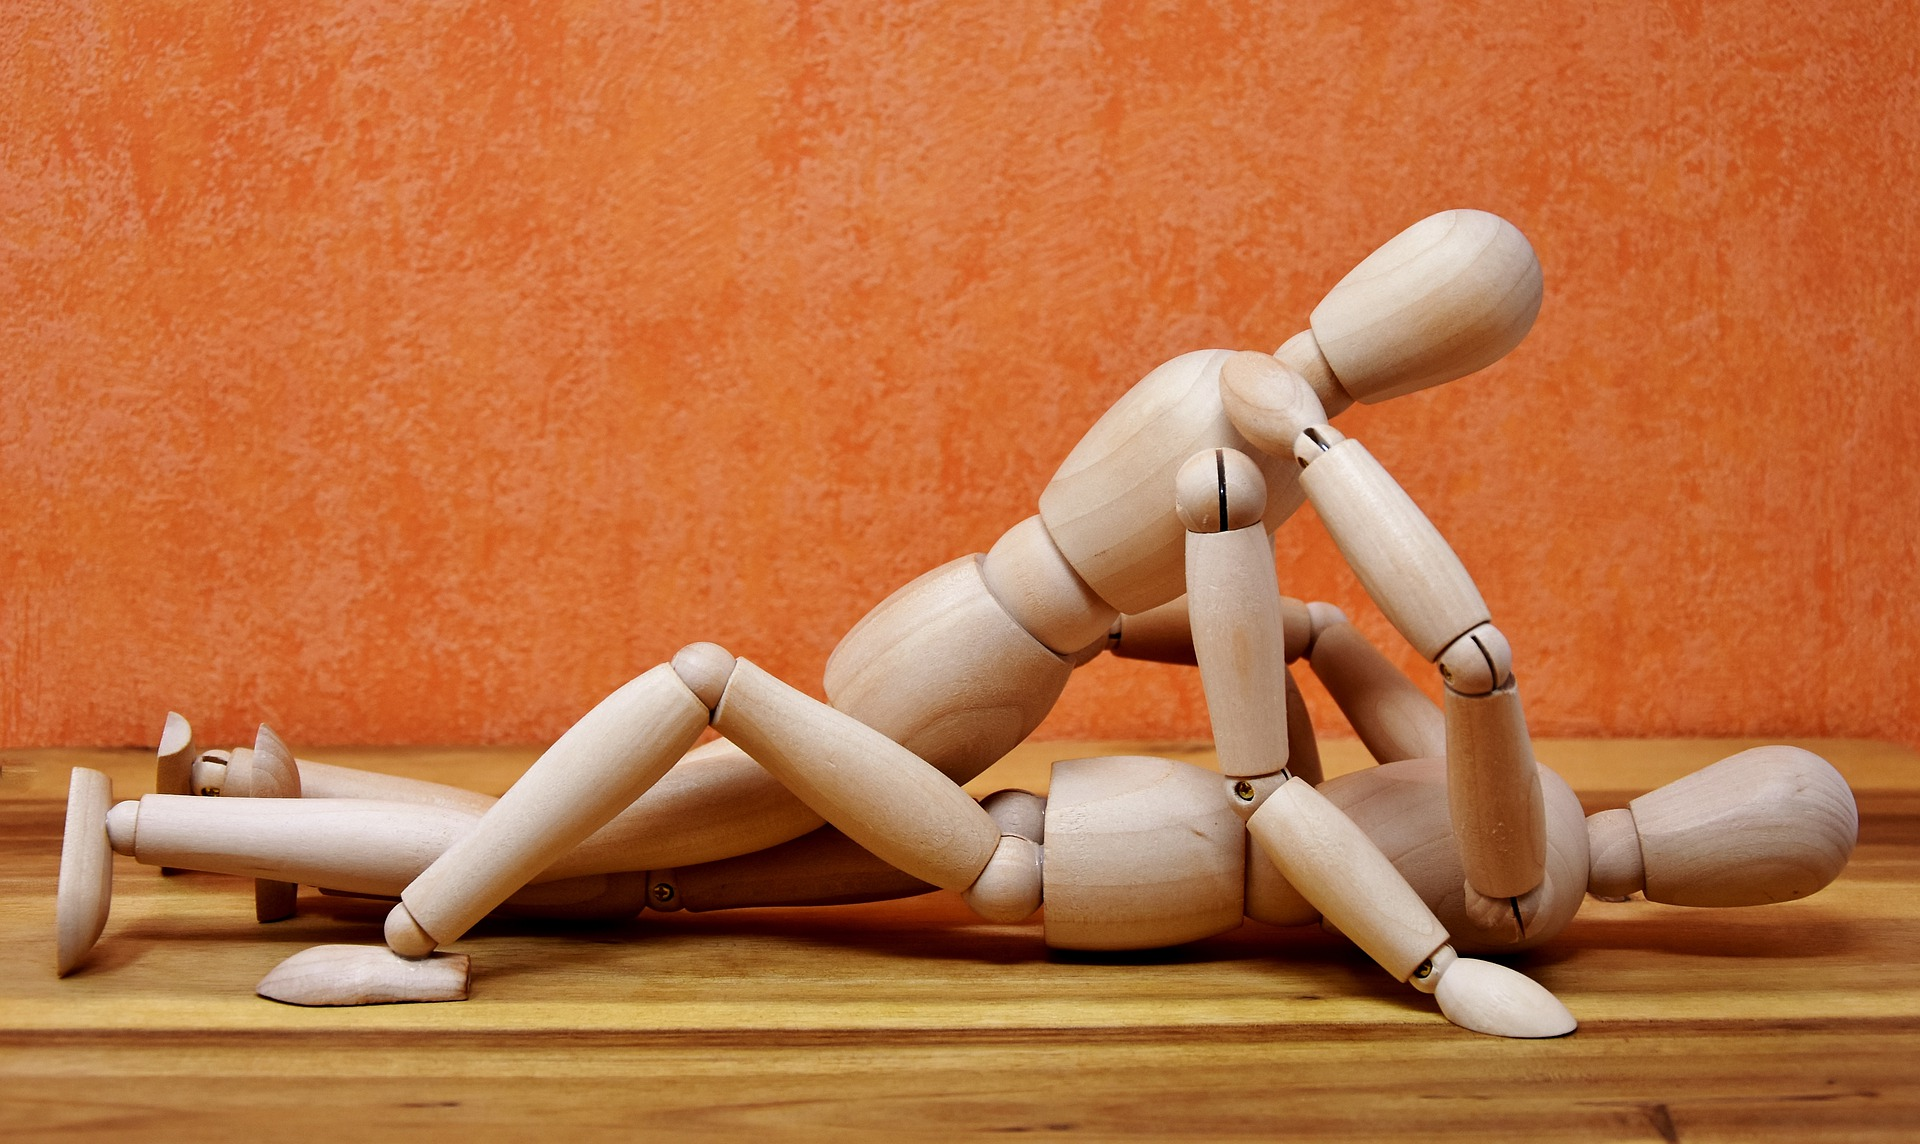 Two gender neutral wooden figures in a sexual position.